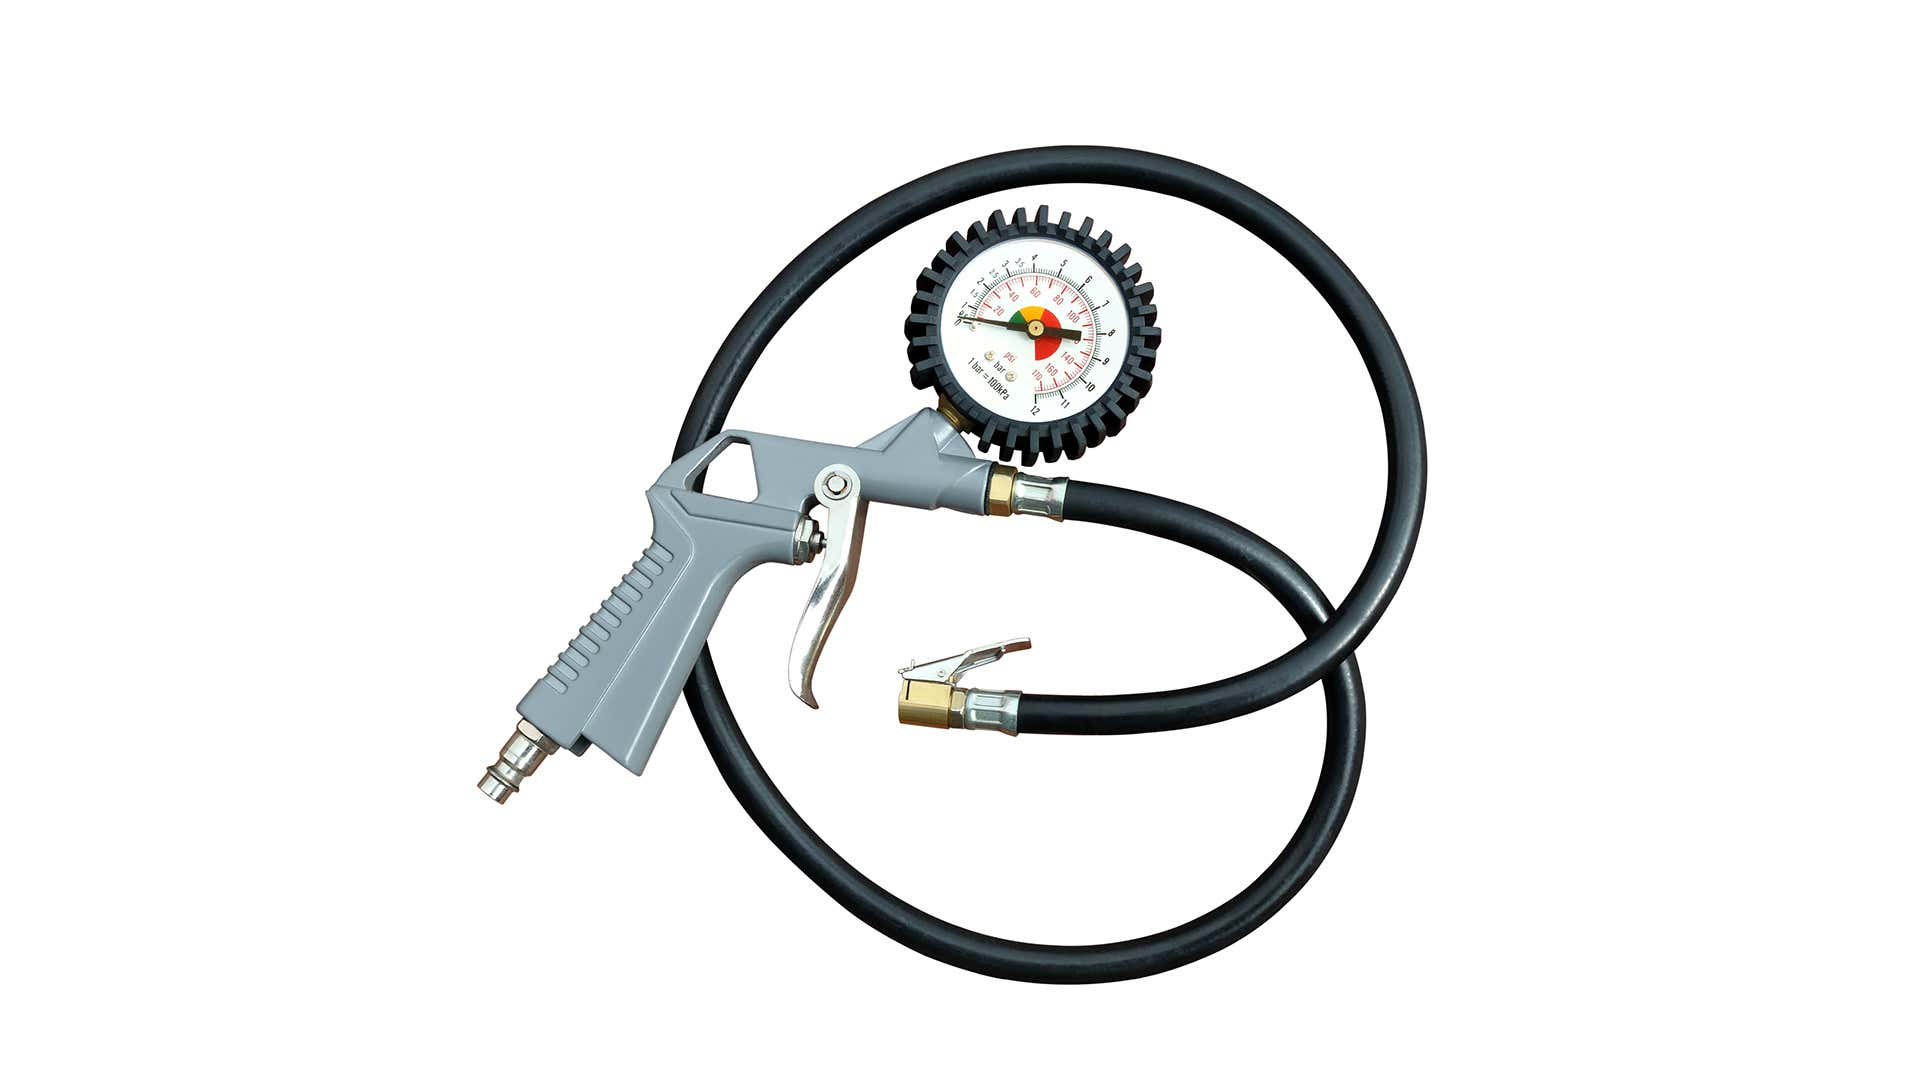 A tire inflator with a built-in pressure gauge.